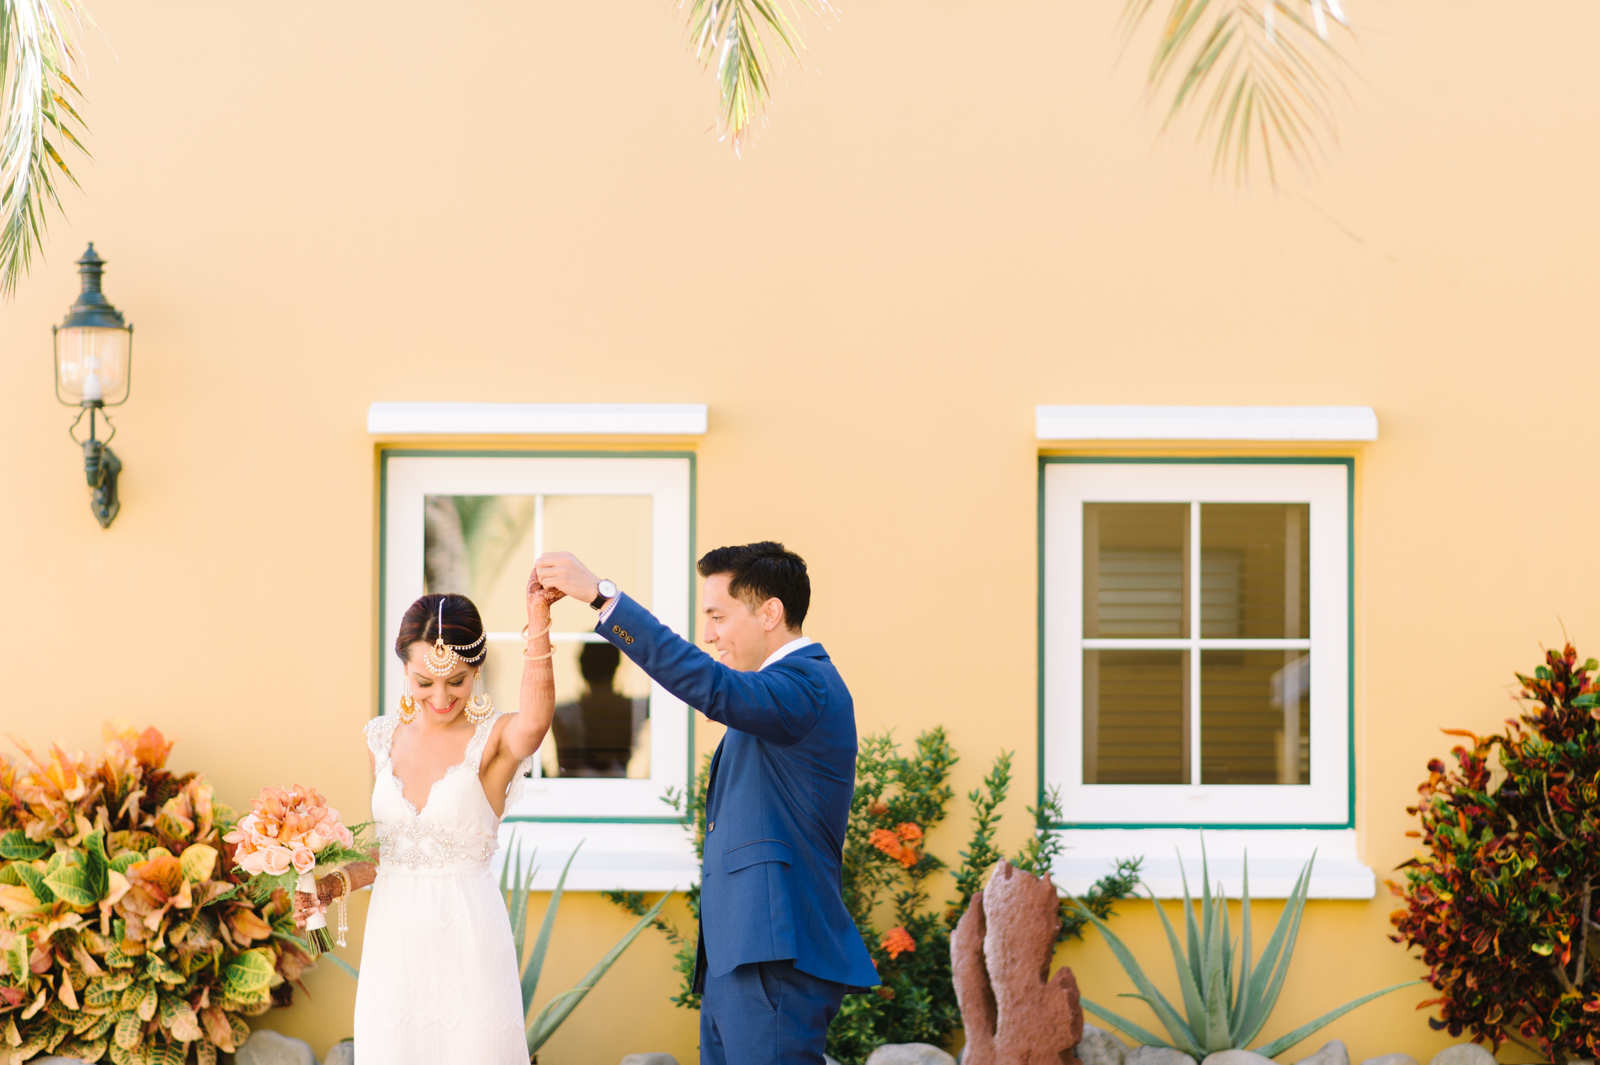 tara mcmullen photography amsterdam manor hotel wedding in aruba best wedding venue in aruba destination wedding photographer aruba indian wedding in aruba-008